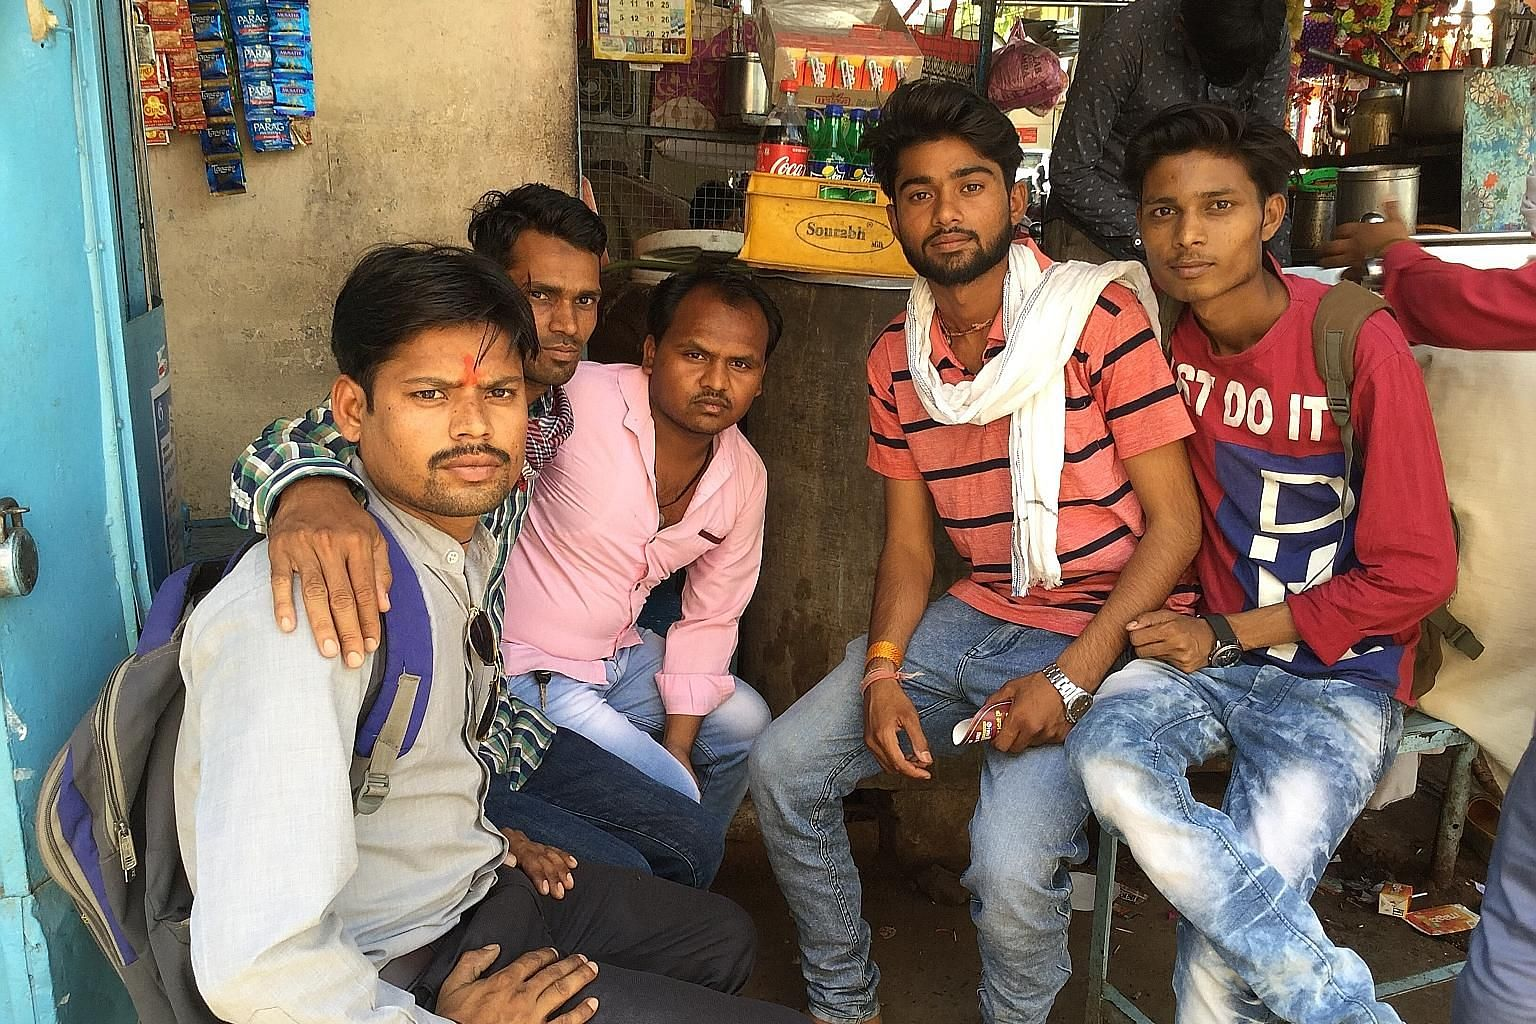 A group of beneficiaries of India's urban employment guarantee scheme in Raisen, Madhya Pradesh, which is controlled by the Congress party. Unemployment is a key concern in the Indian parliamentary elections but critics say the BJP government has mad